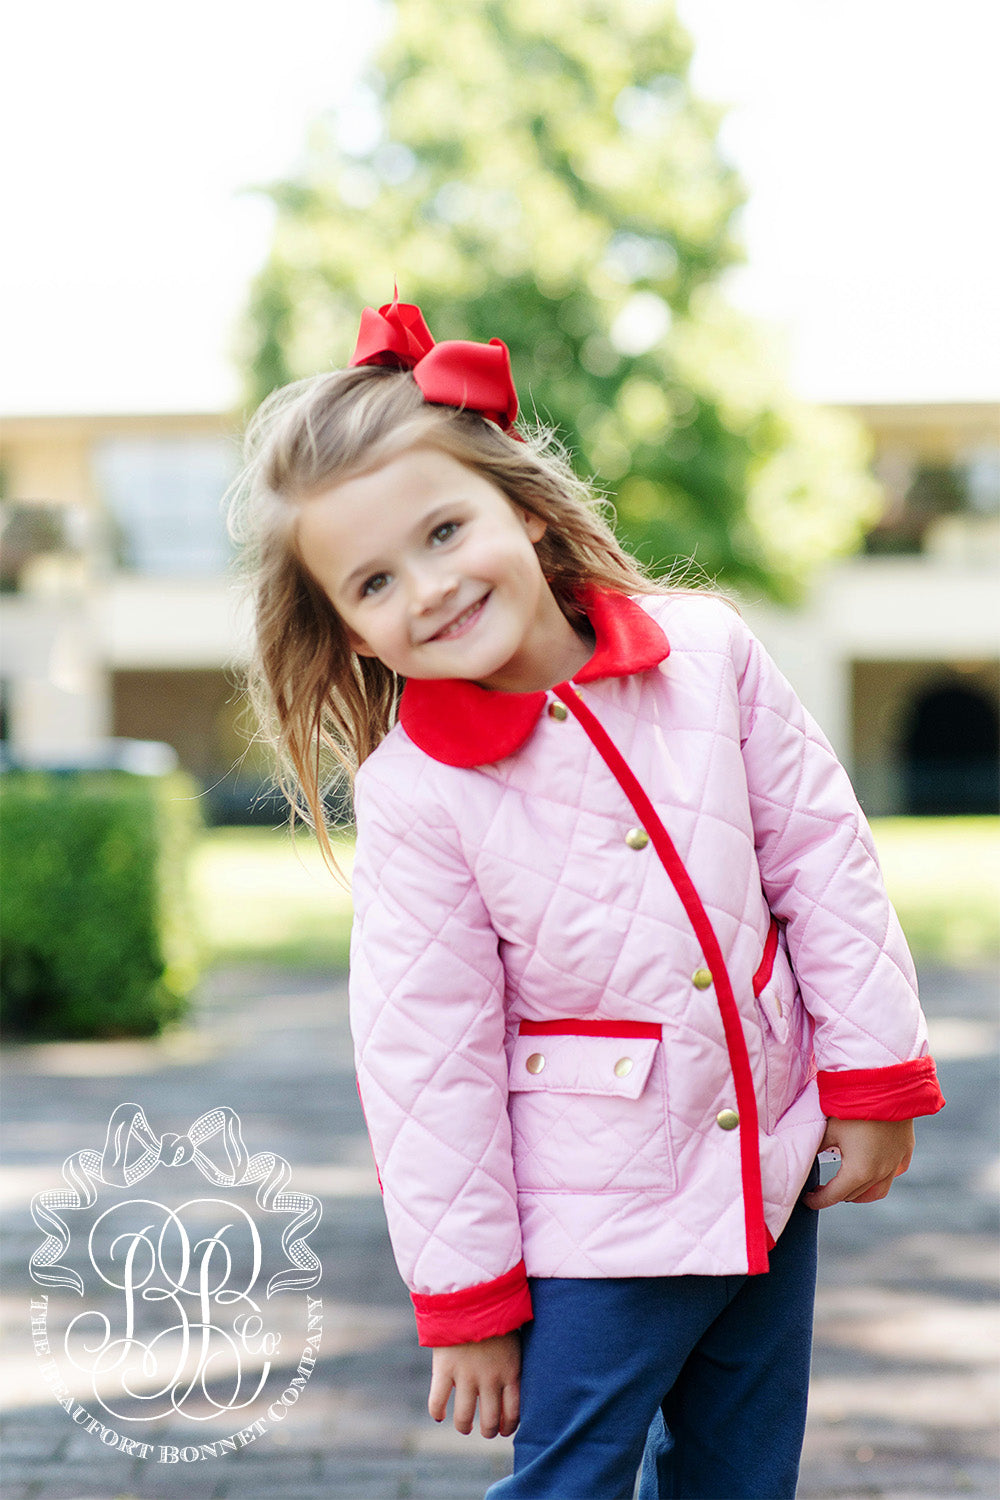 The Beaufort Bonnet Company | Upscale items for babies and